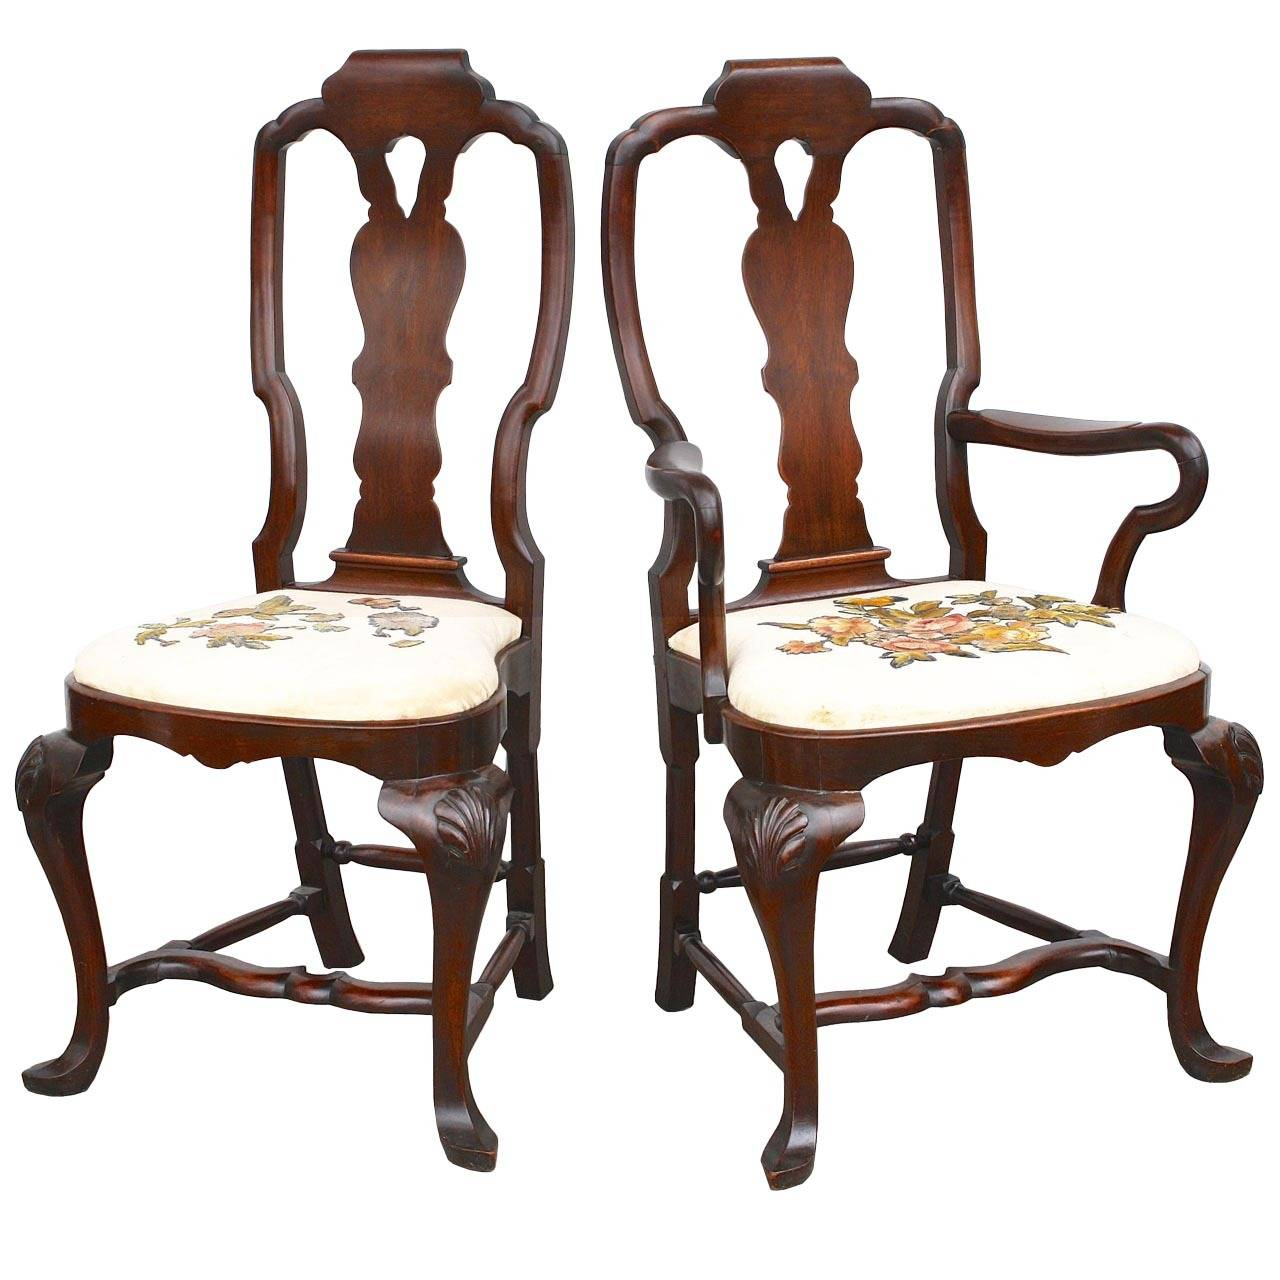 Fourteen american queen anne revival dining chairs for sale at 1stdibs - Queen anne dining room furniture ...